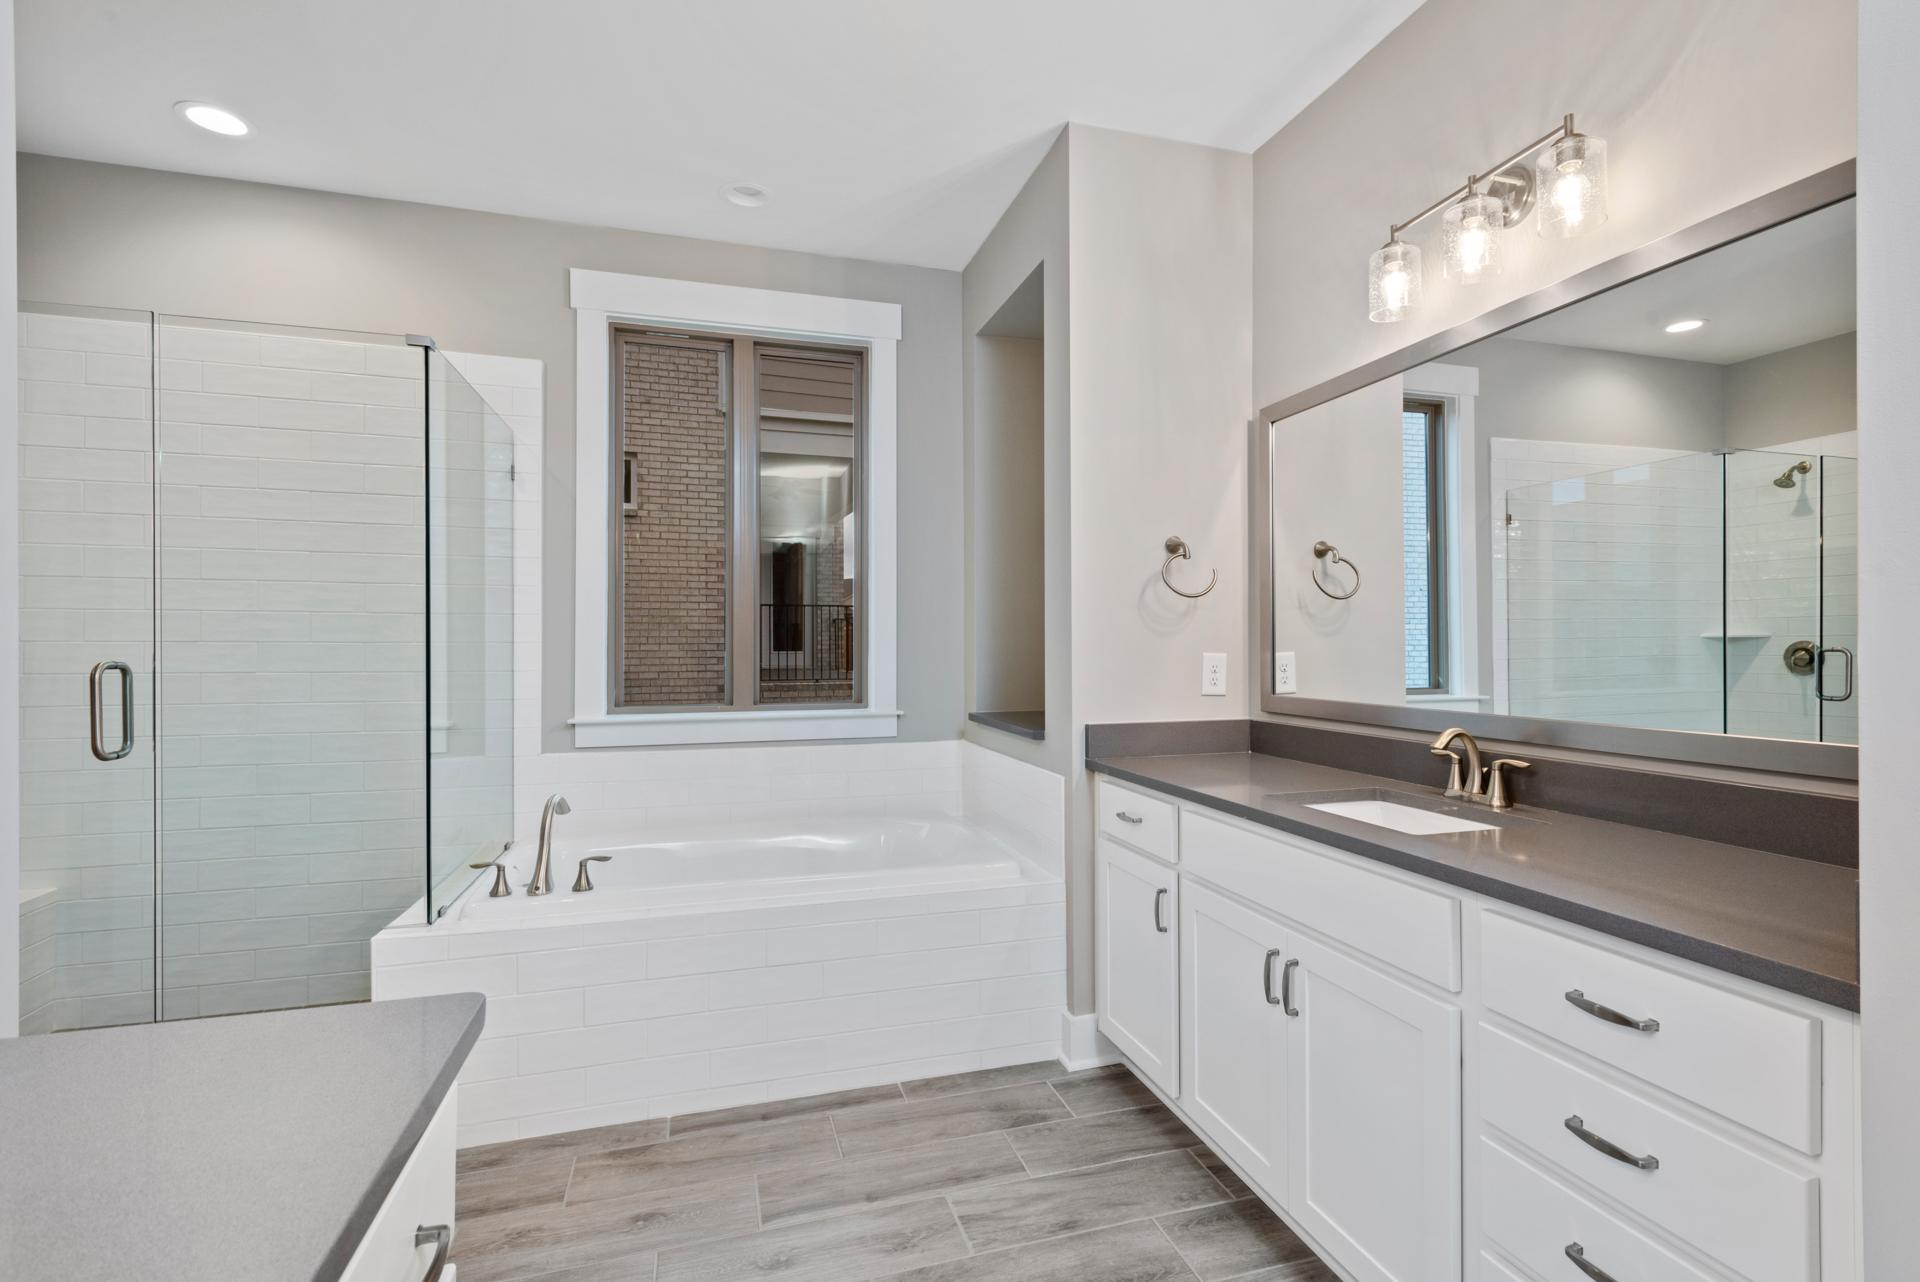 Bathroom featured in the Marshall By Drees Homes in Nashville, TN